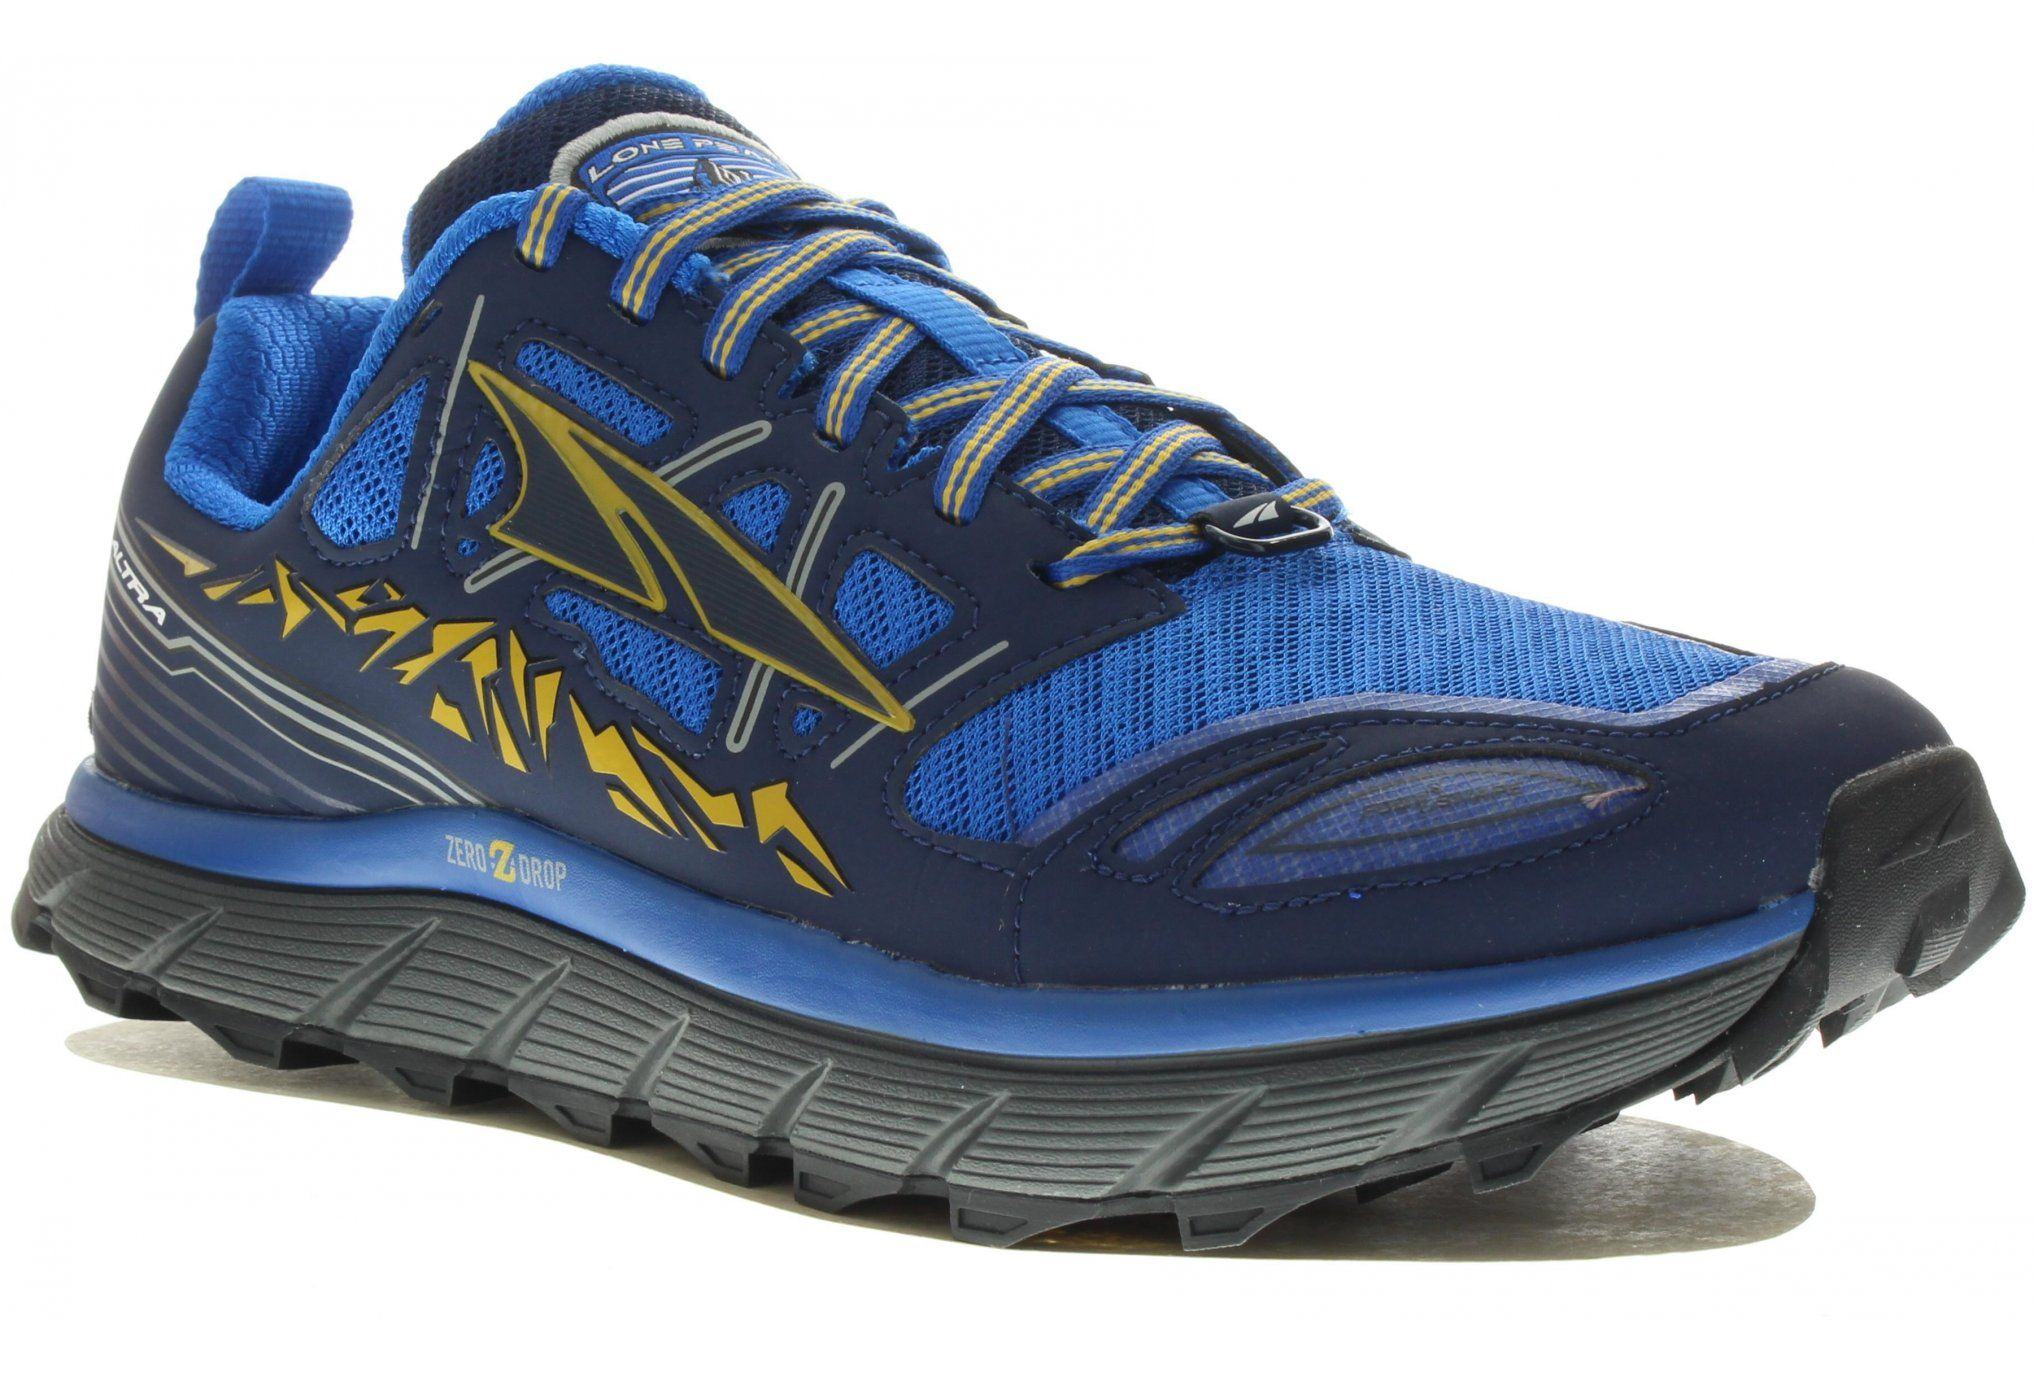 aad445beb53 Altra Lone Peak 3.0 M pas cher - Chaussures homme running Trail en promo